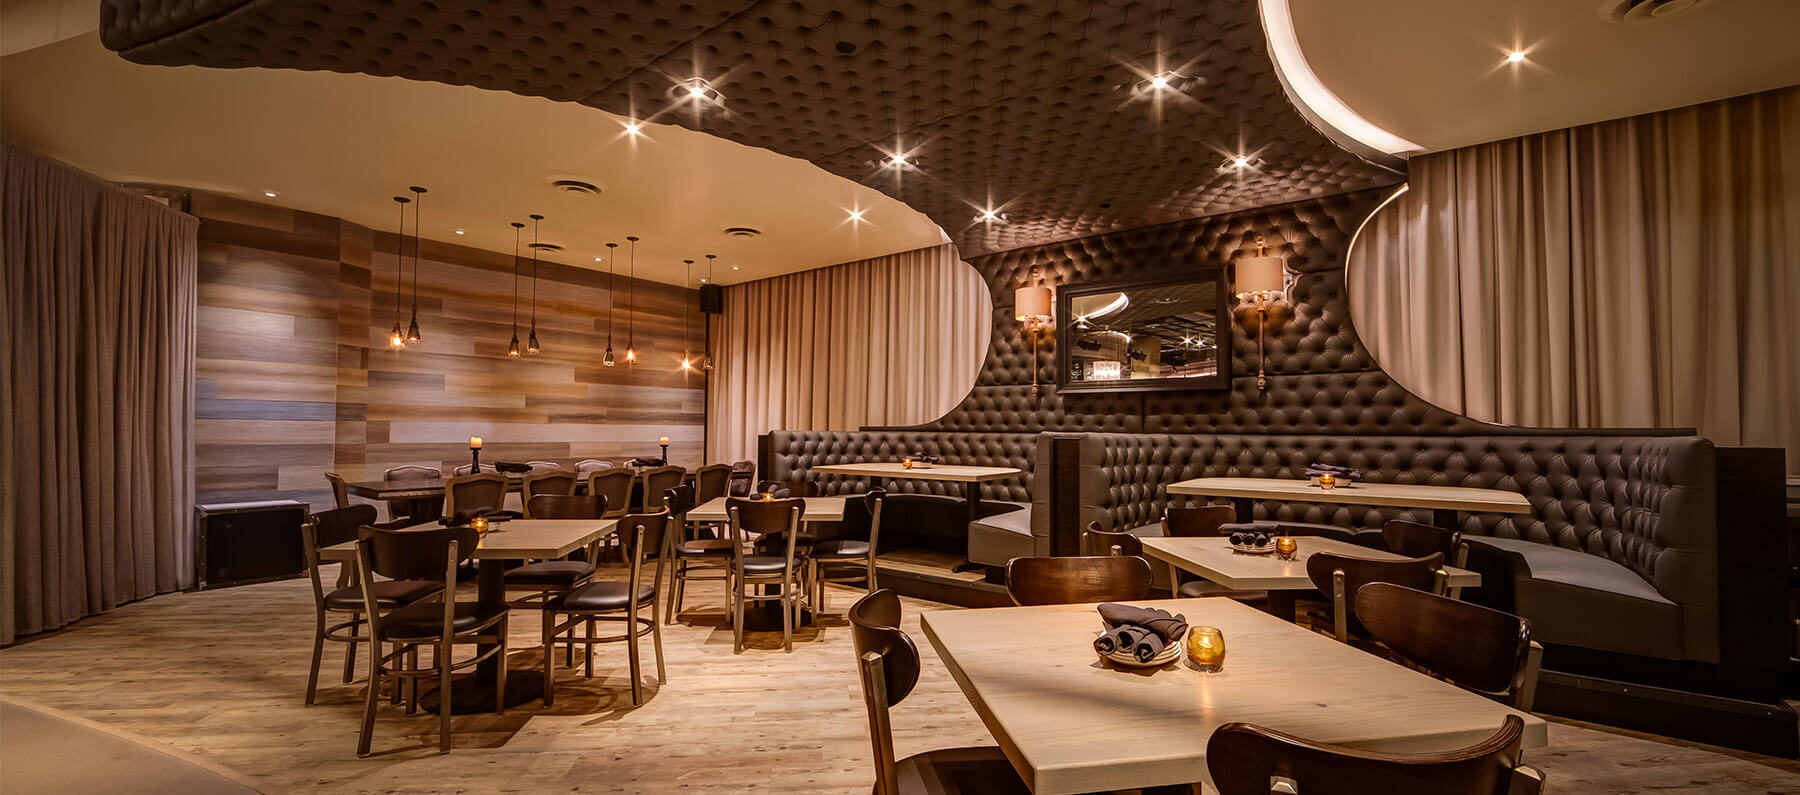 The dining area at Chicago's River North Siena Tavern showcases stunning custom booth seating created by Contract Industries.